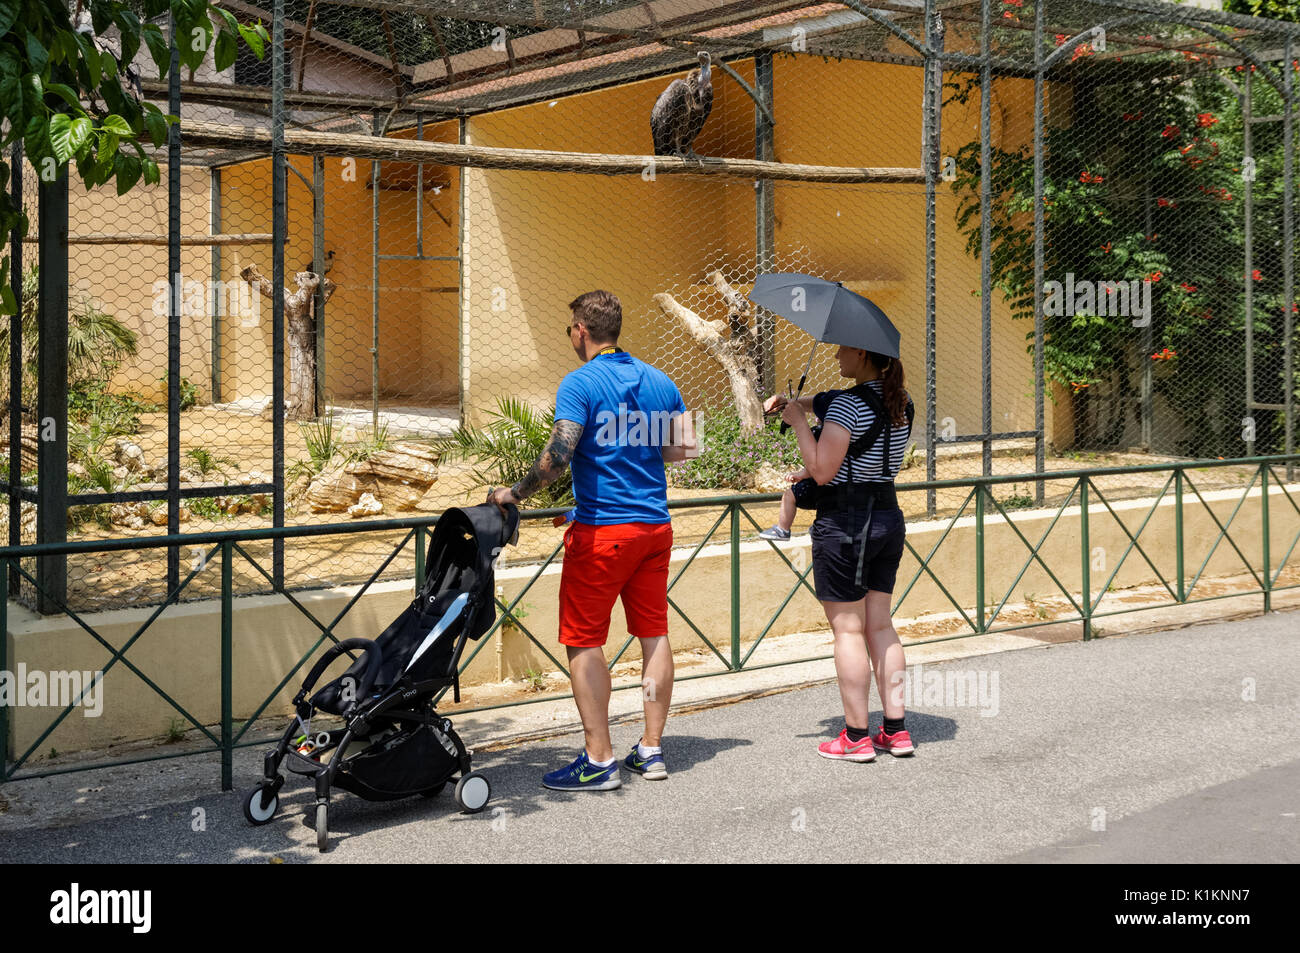 Visitors at the Rome Zoo, Italy - Stock Image